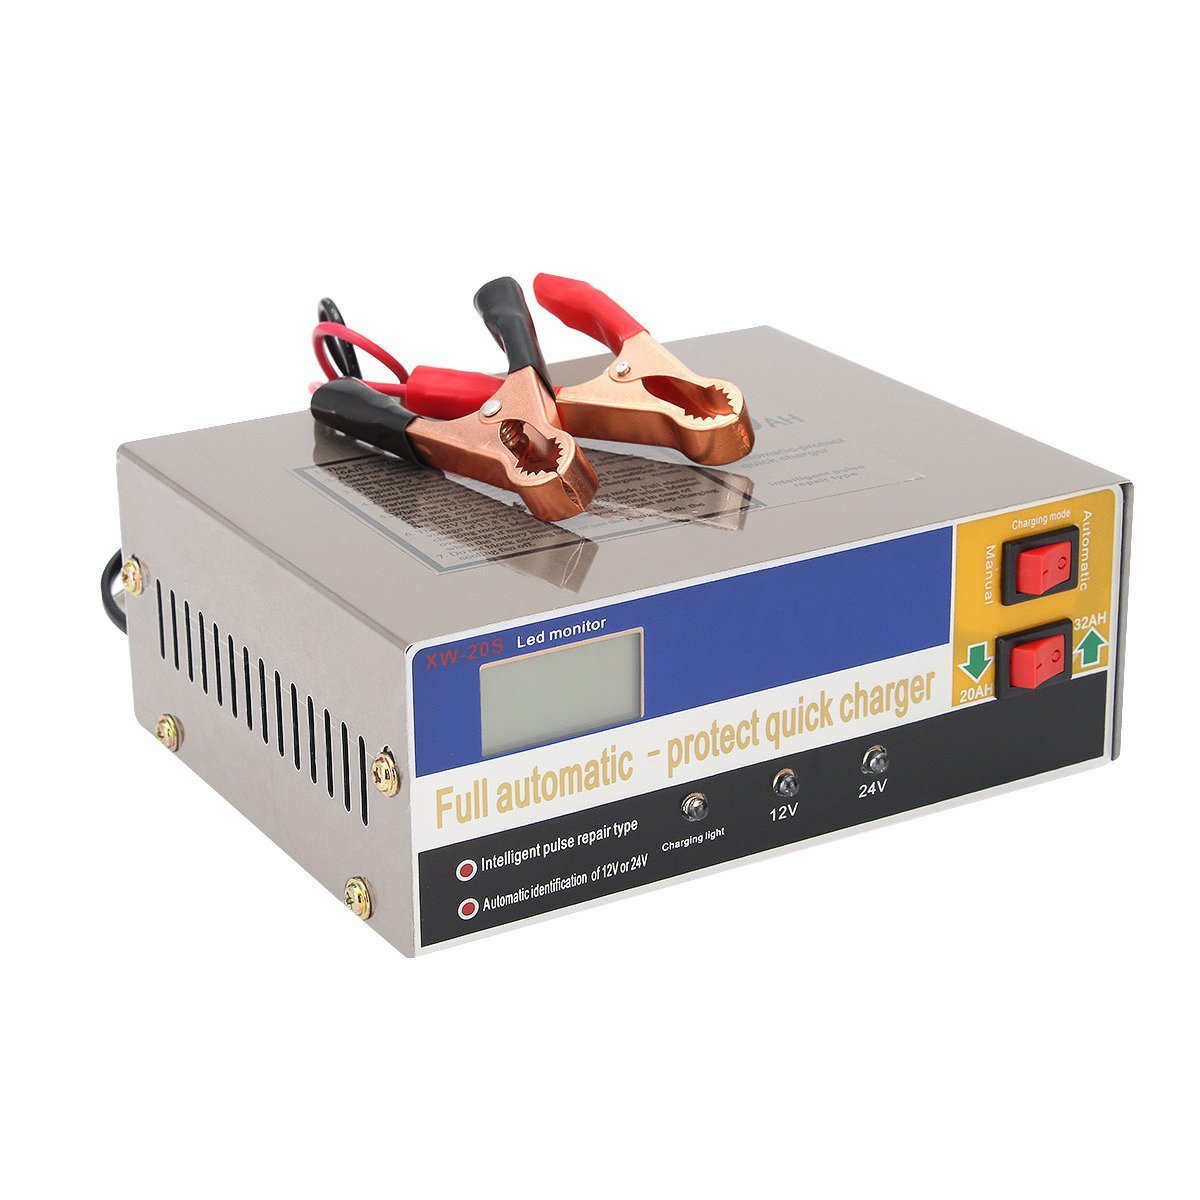 12V/24V Automatic Electric Car Battery Charger Intelligent Pulse Repair Type Battery Charger for Lead Acid Battery 100AH 350w 12v 24v 200ah portable electric car emergency charger booster intelligent pulse repair type abs lcd battery charge 2 modes